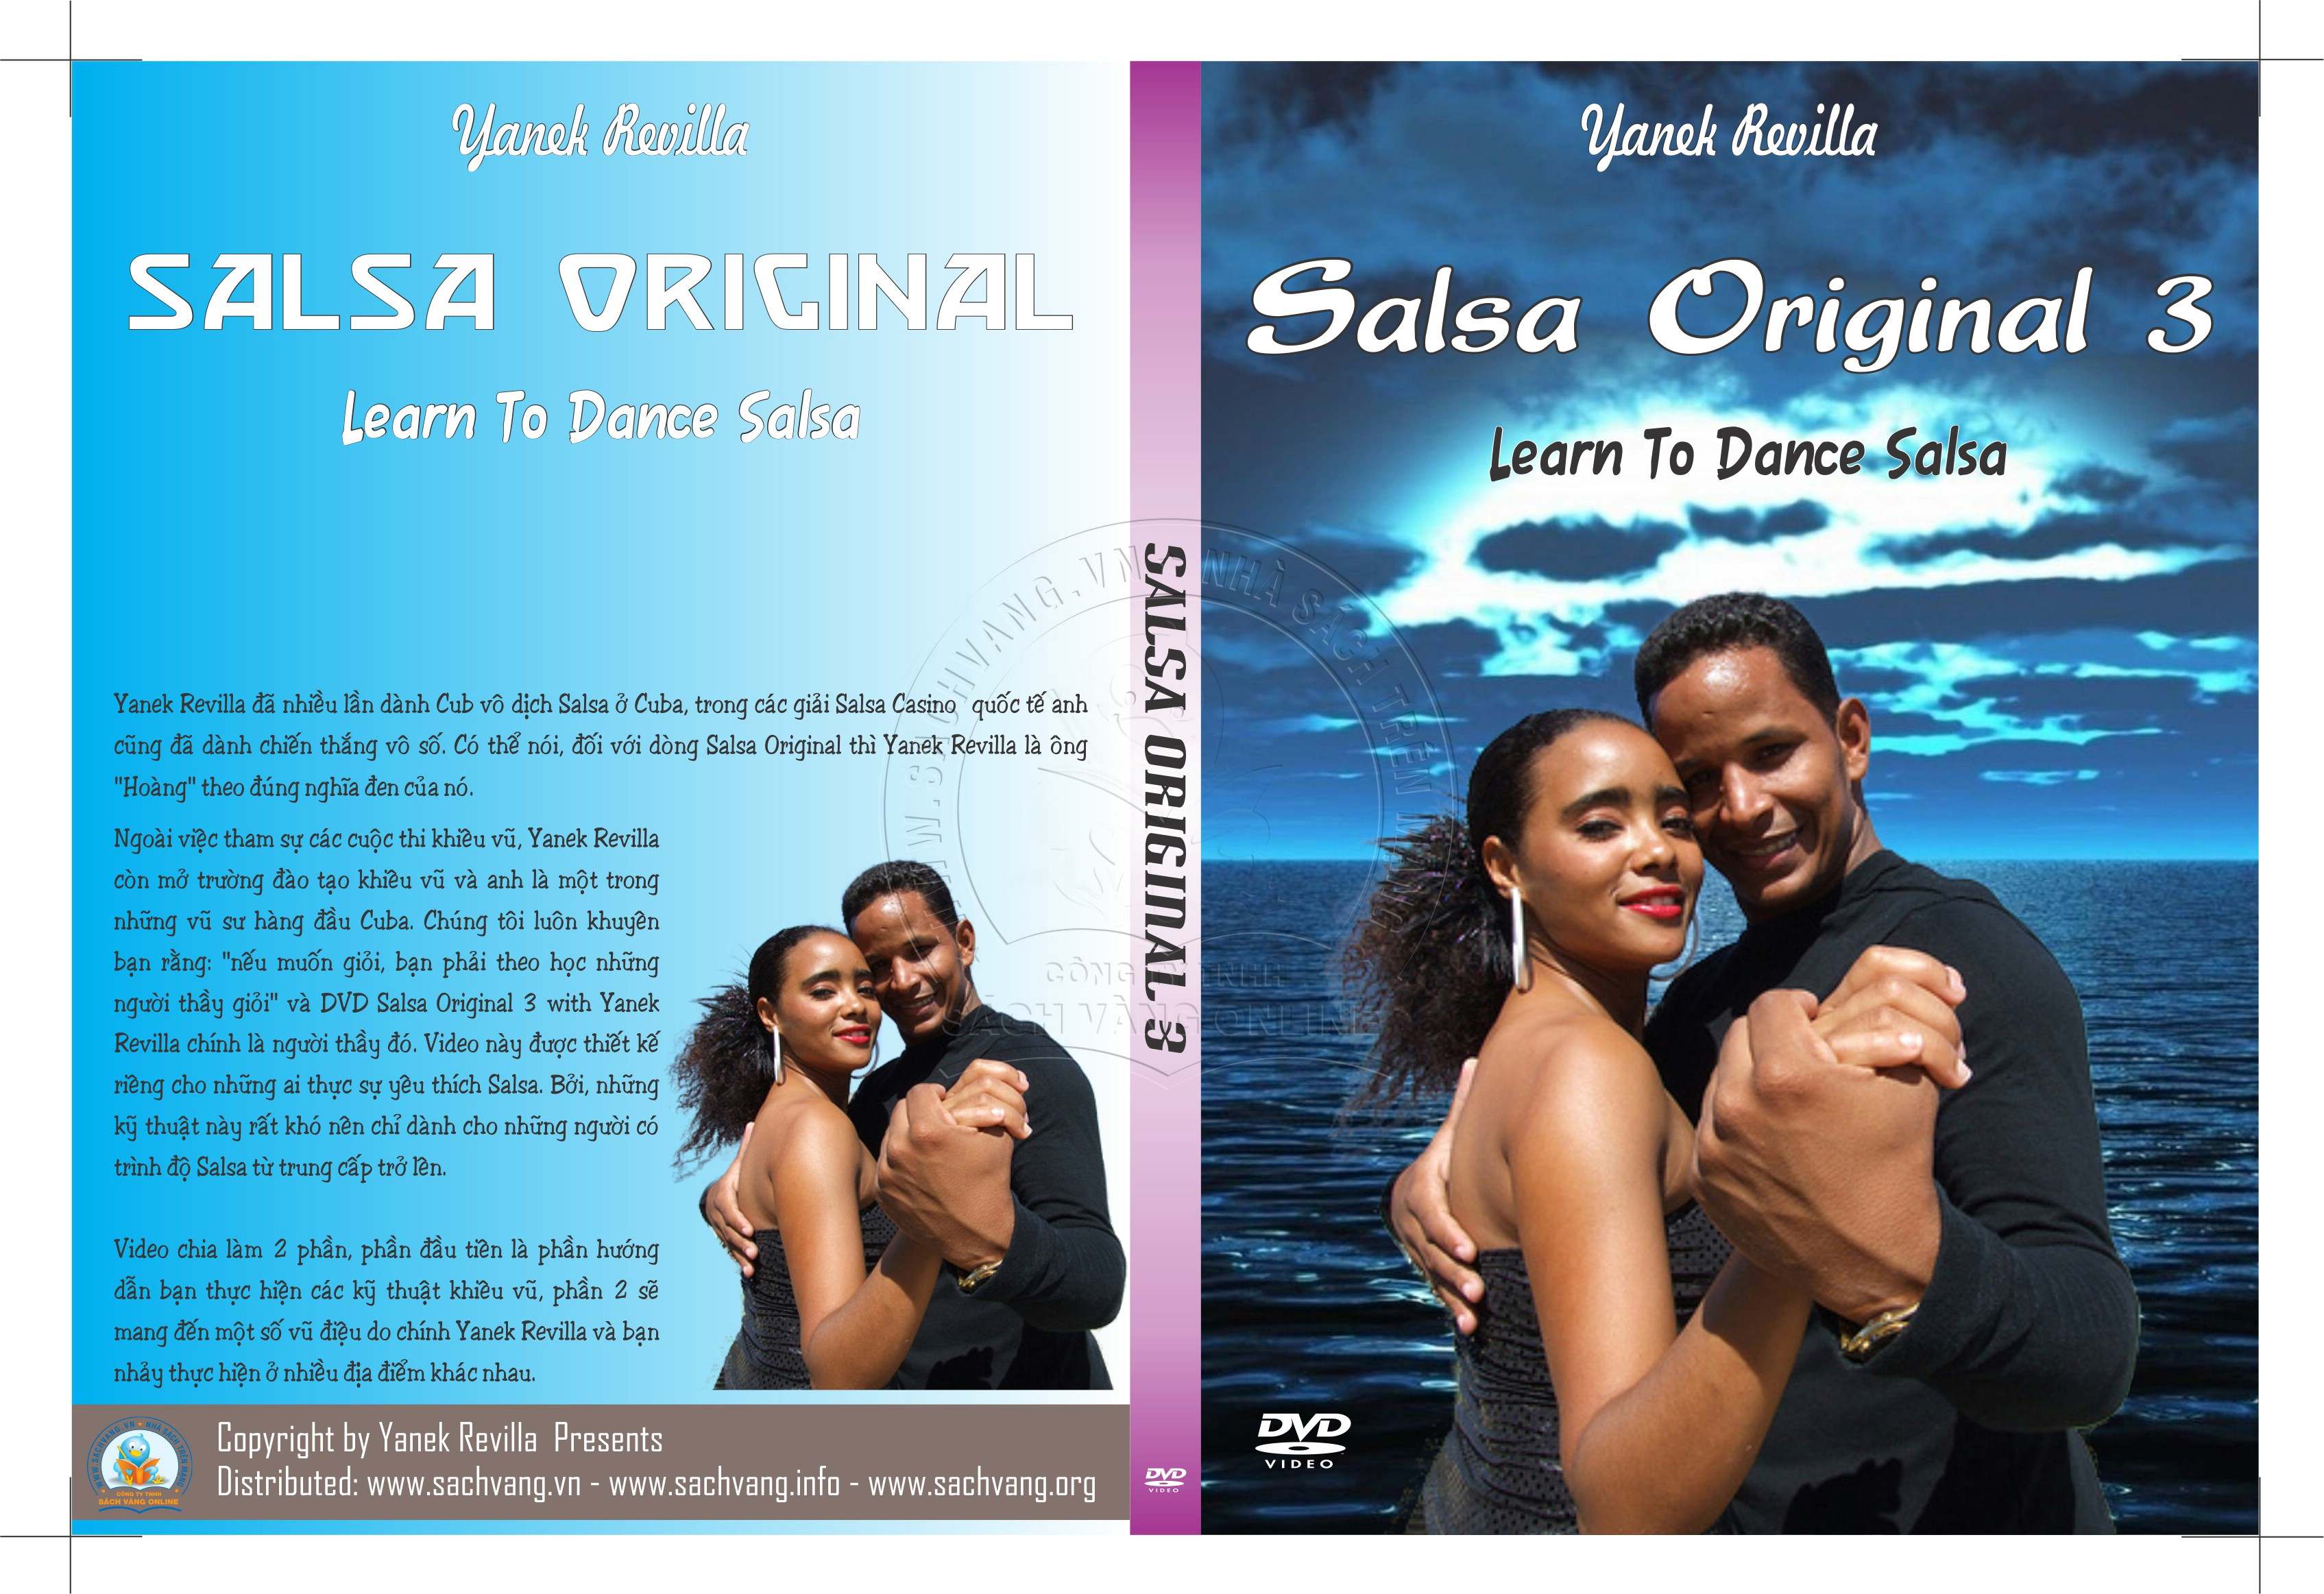 Salsa Original 3 with Yanek Revilla cover